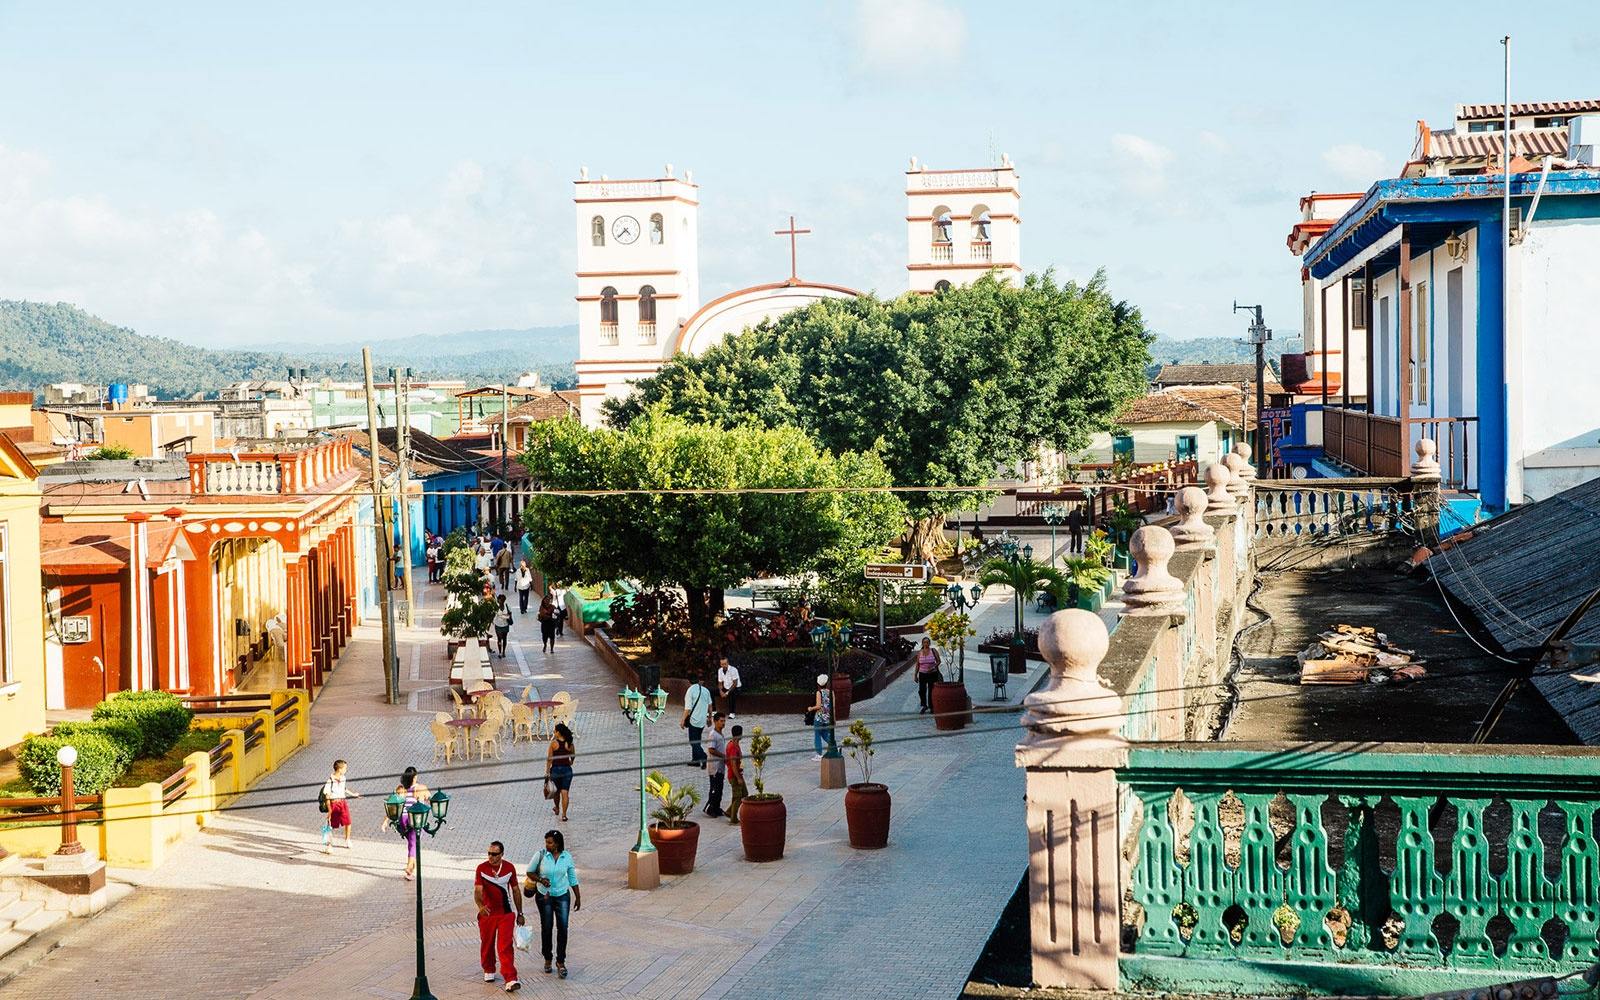 In Baracoa: Peruse the Bustling Main Drag